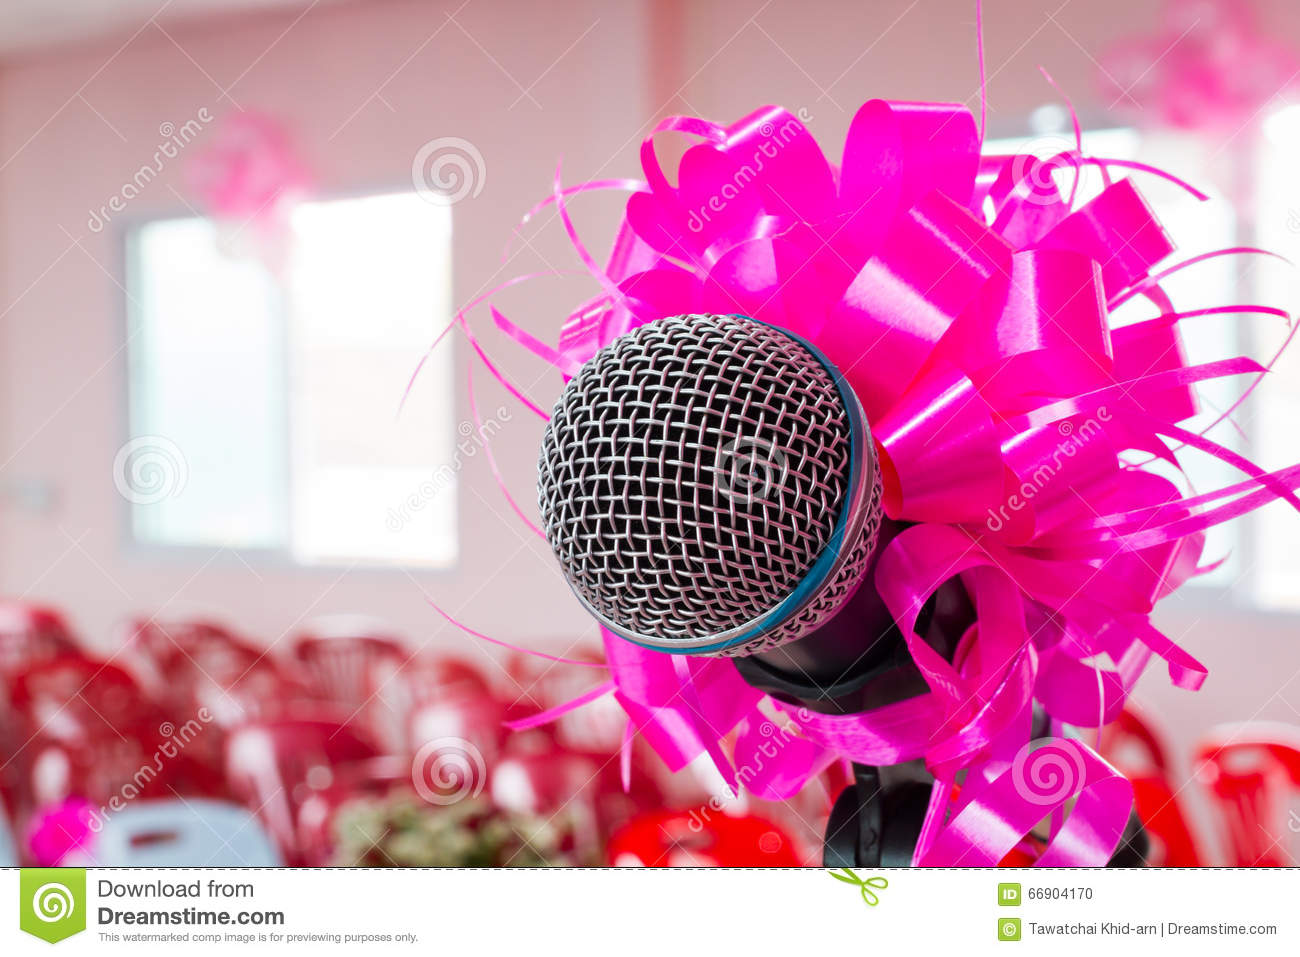 Microphone With Pink Bow And Ribbon In Wedding Ceremony